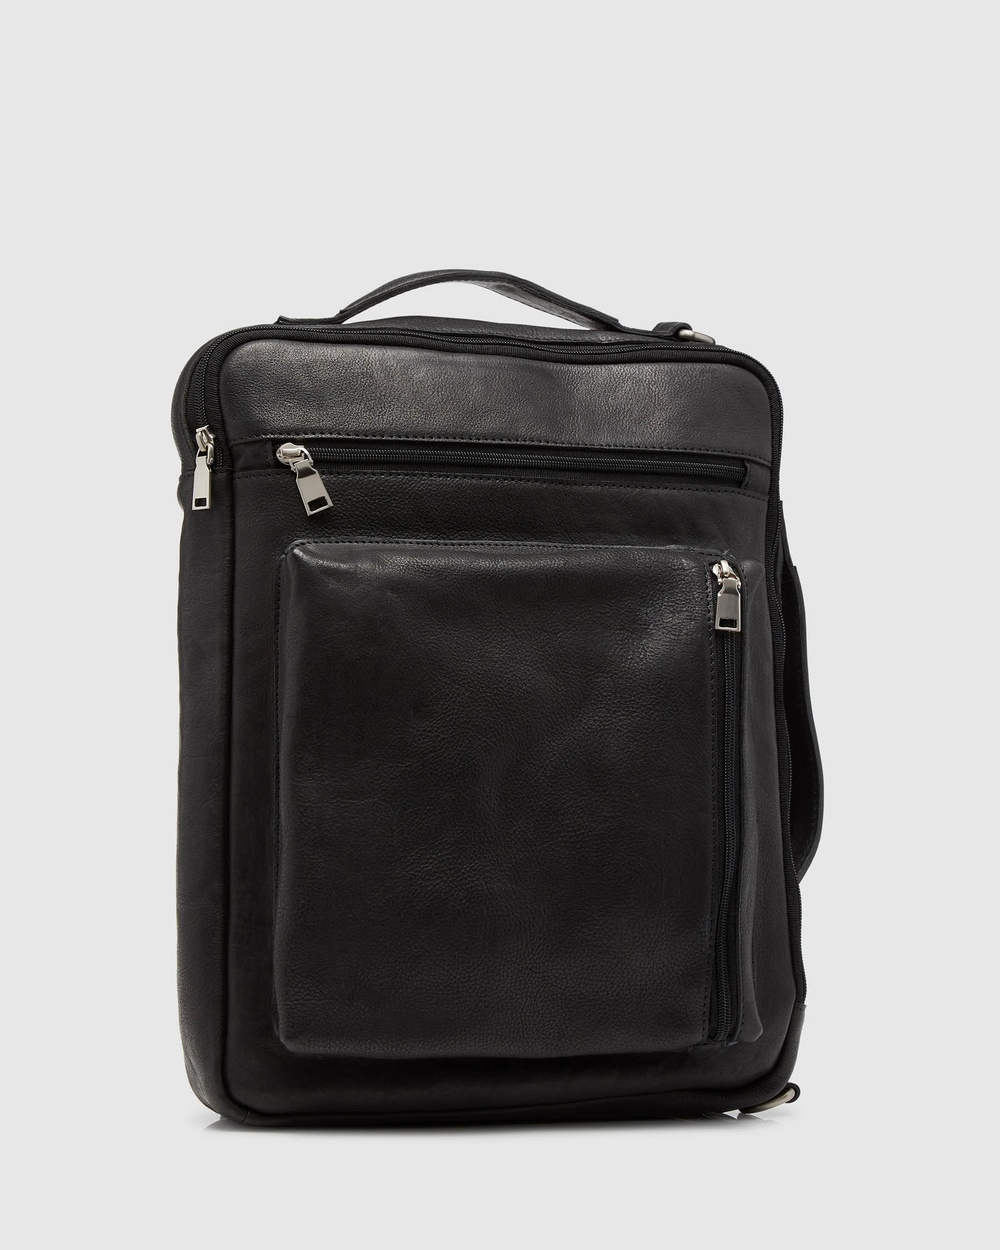 Oxford Swift Leather Backpack Briefcase Bags Black